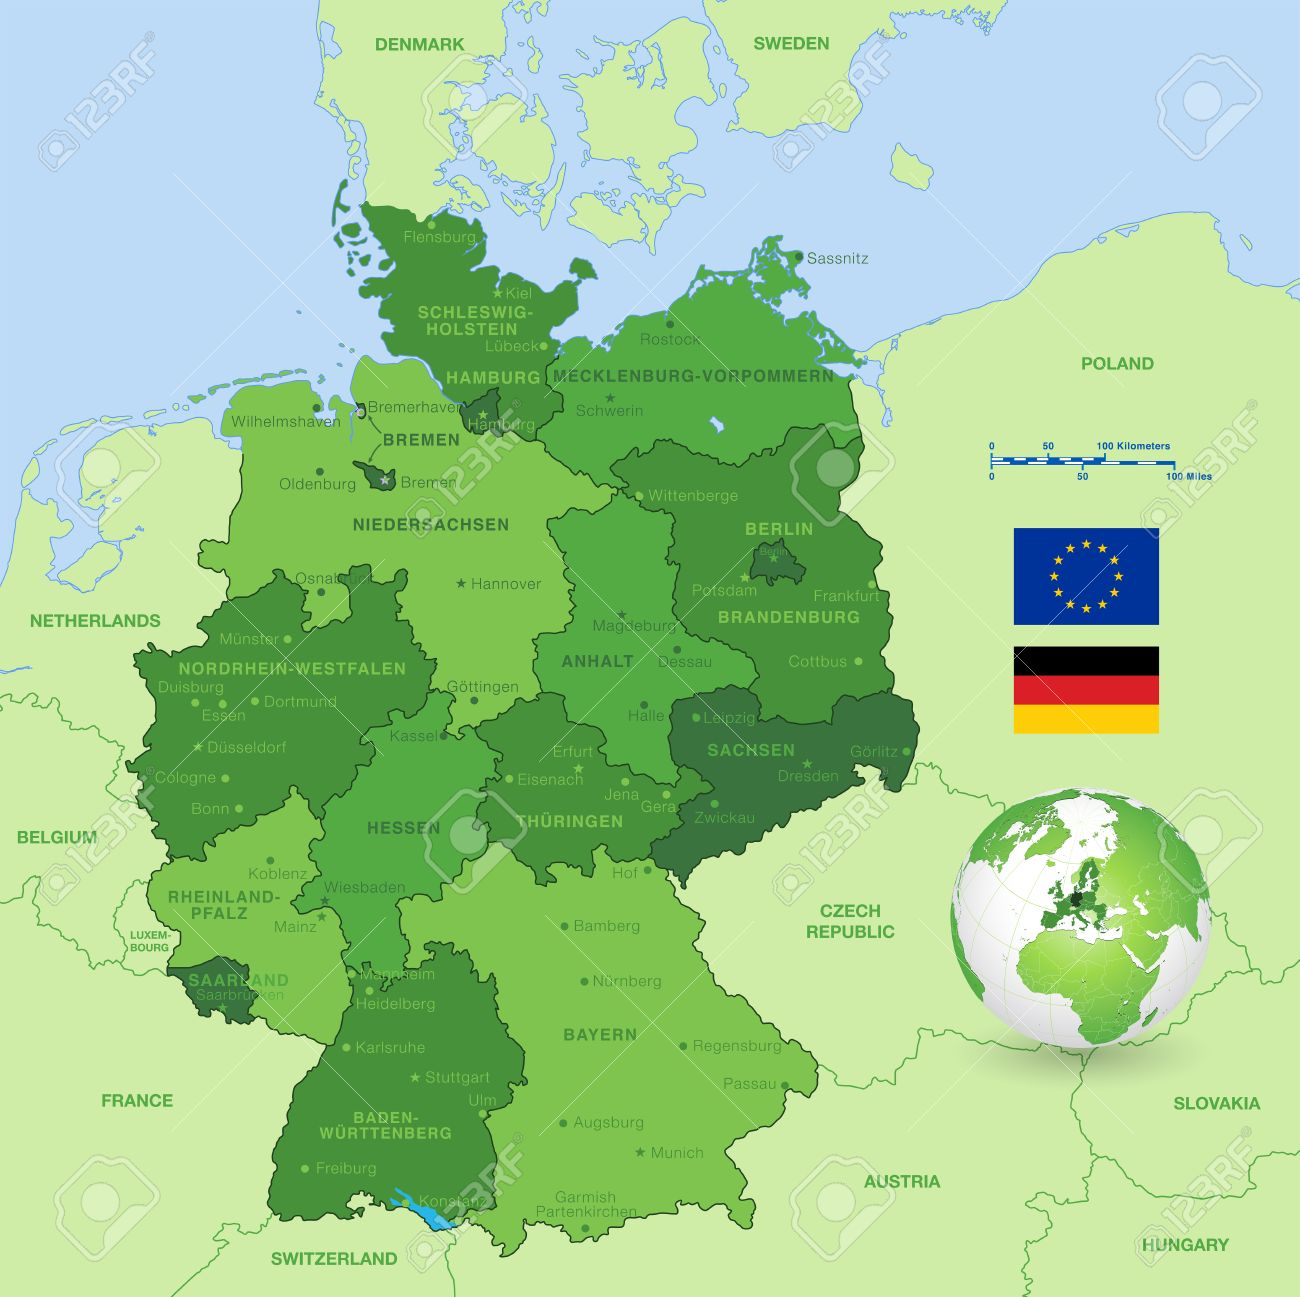 A High Detail Vector Map Of Germany States And Major Cities - Germany map with major cities